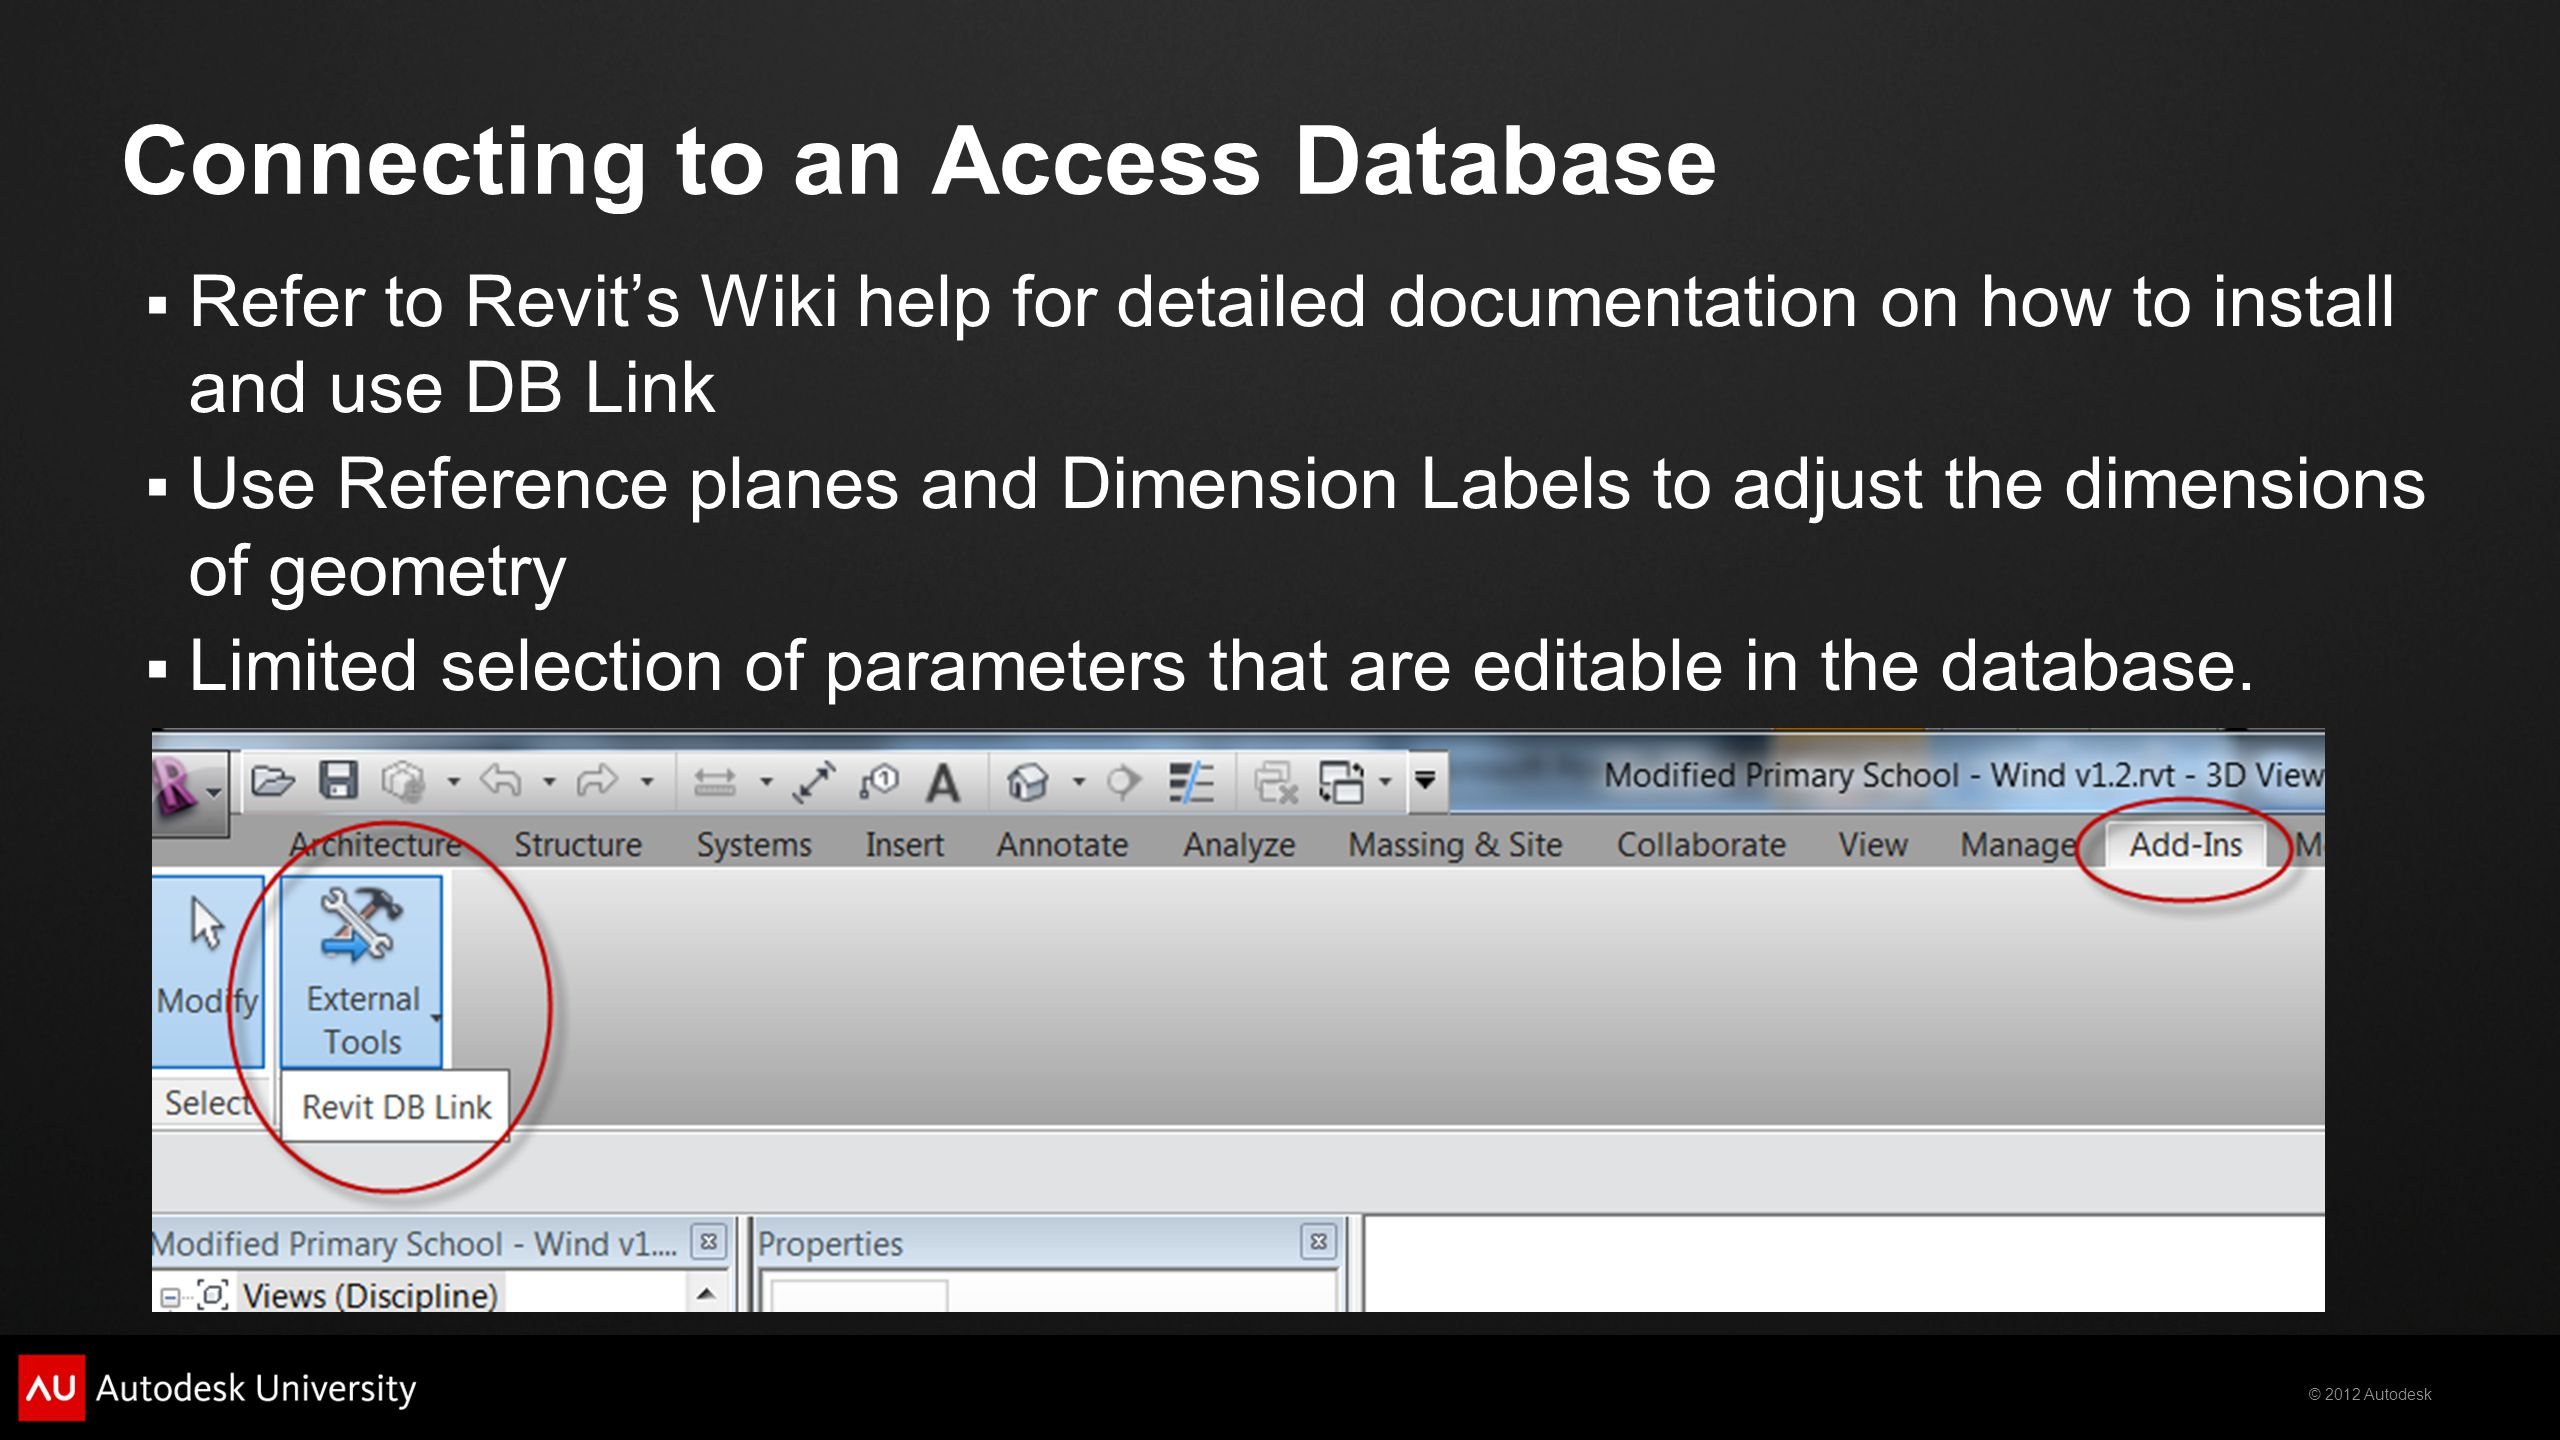 © 2012 Autodesk Connecting to an Access Database Refer to Revits Wiki help for detailed documentation on how to install and use DB Link Use Reference planes and Dimension Labels to adjust the dimensions of geometry Limited selection of parameters that are editable in the database.